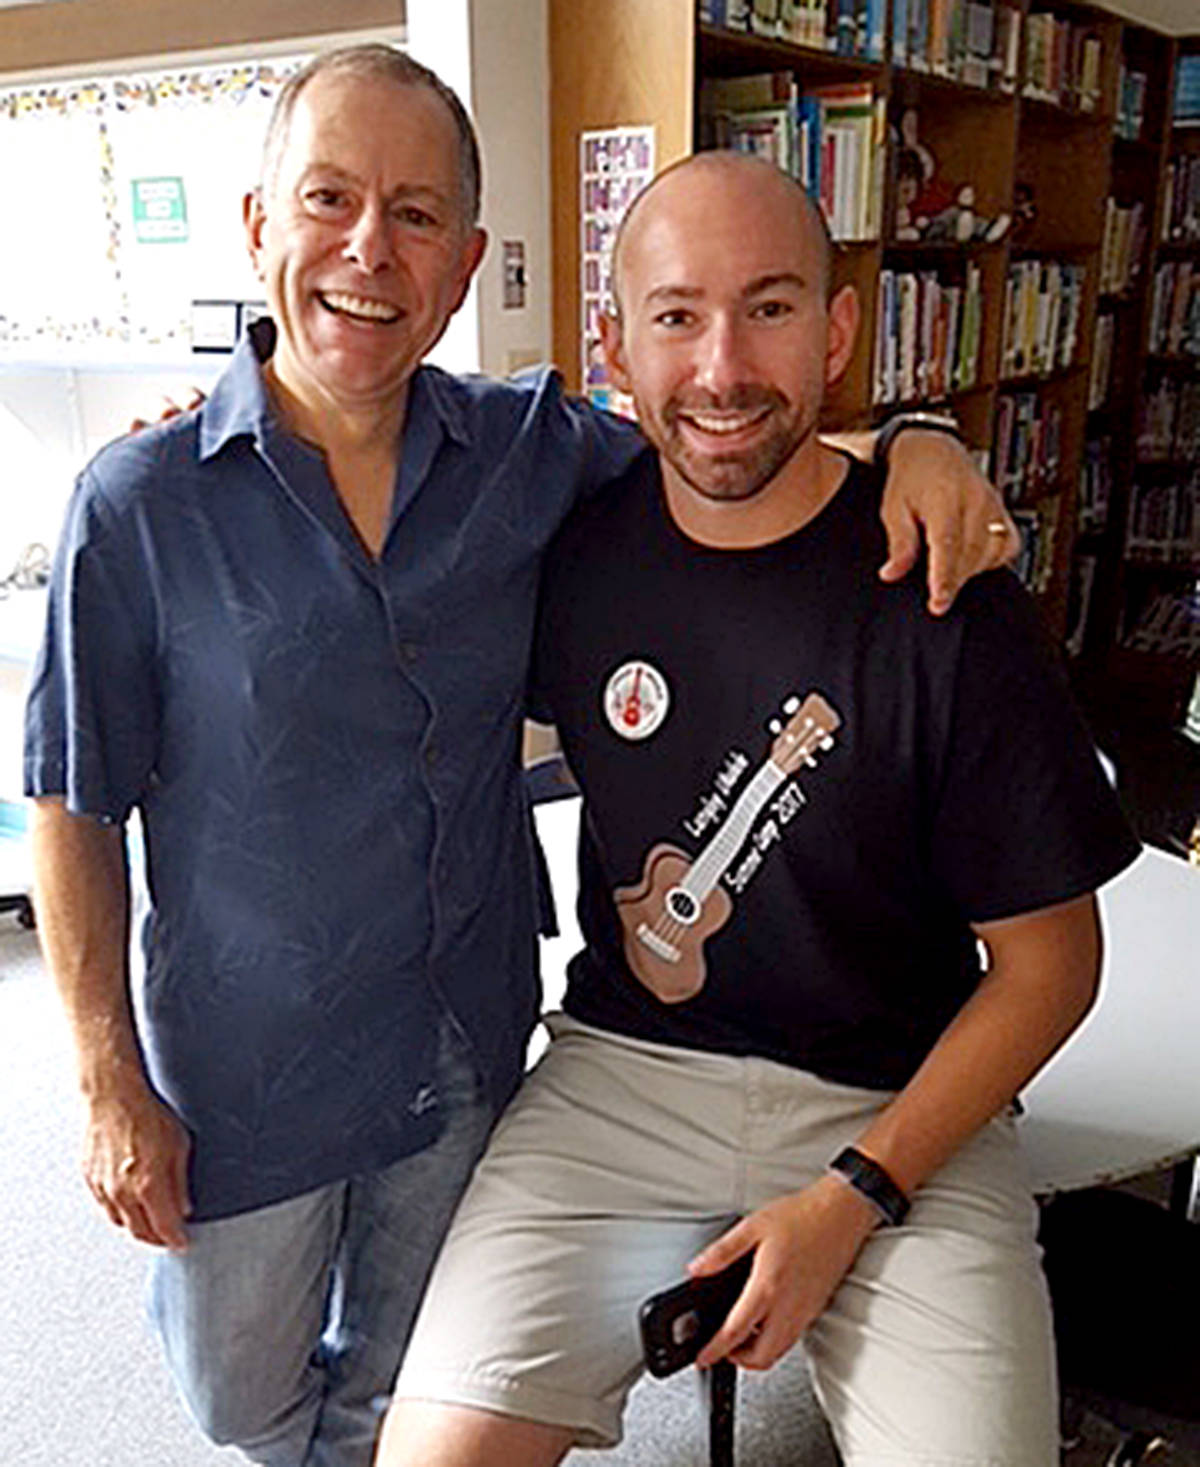 Peter Luongo and hi son, Paul, love sharing their passion for the ukulele with music students of all ages. (Special to Langley Advance Times)